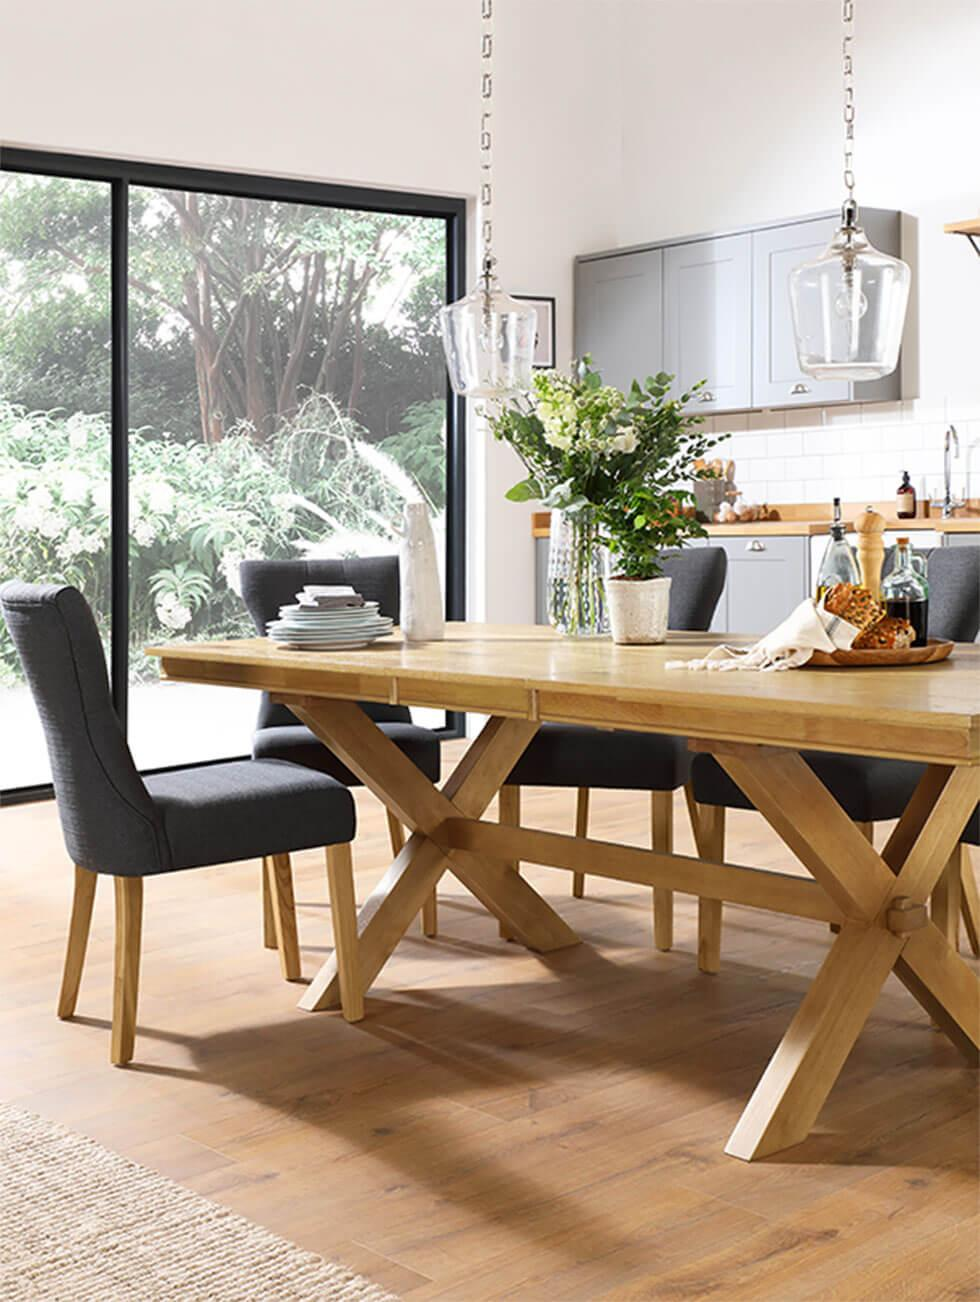 Wooden dining set with dark grey fabric chairs